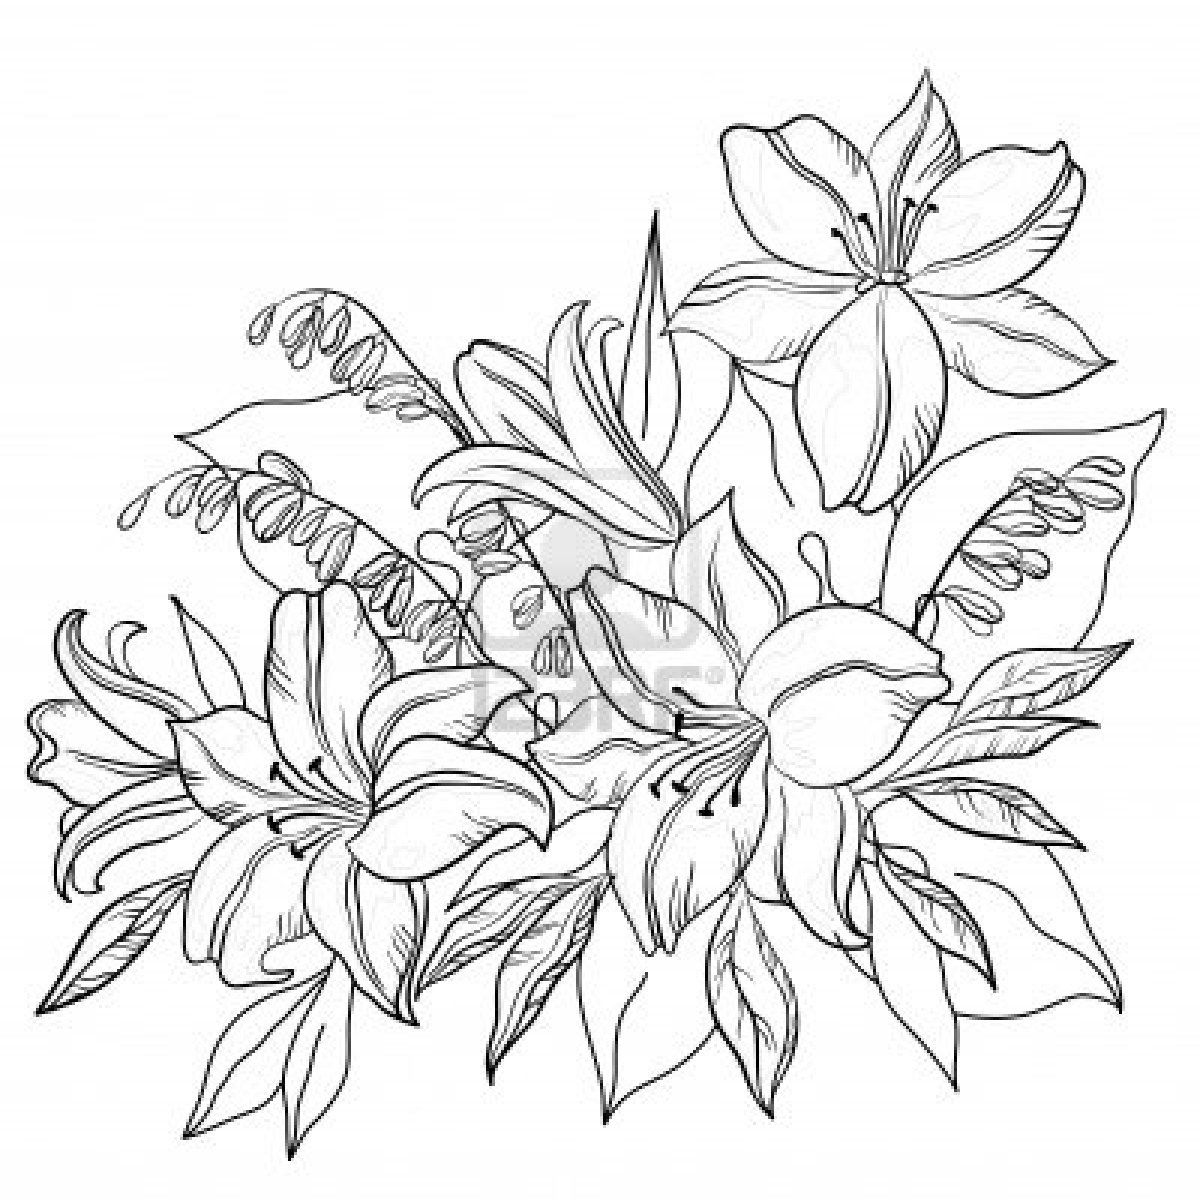 Easter Lily Coloring Pages Use Crayola Crayons Colored Pencils